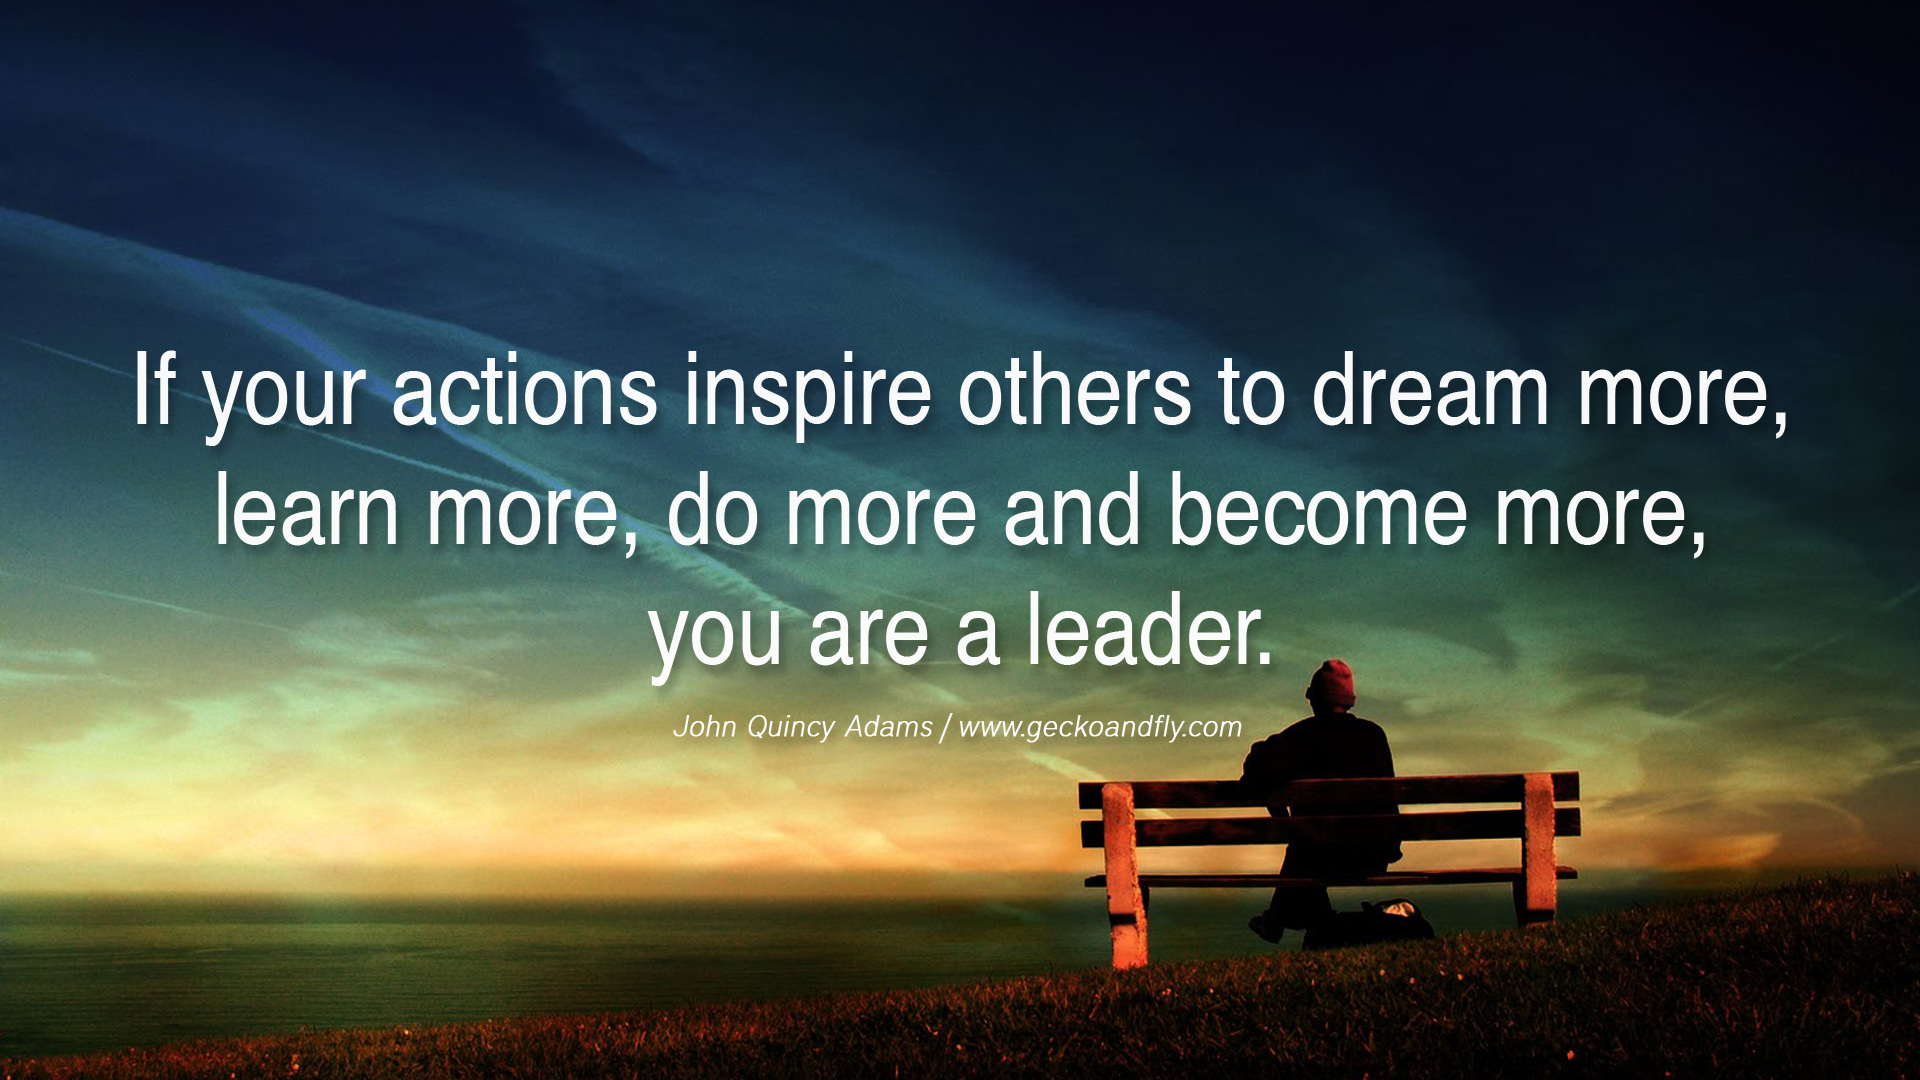 Leadership Quotes Wallpapers 4 1920x1080